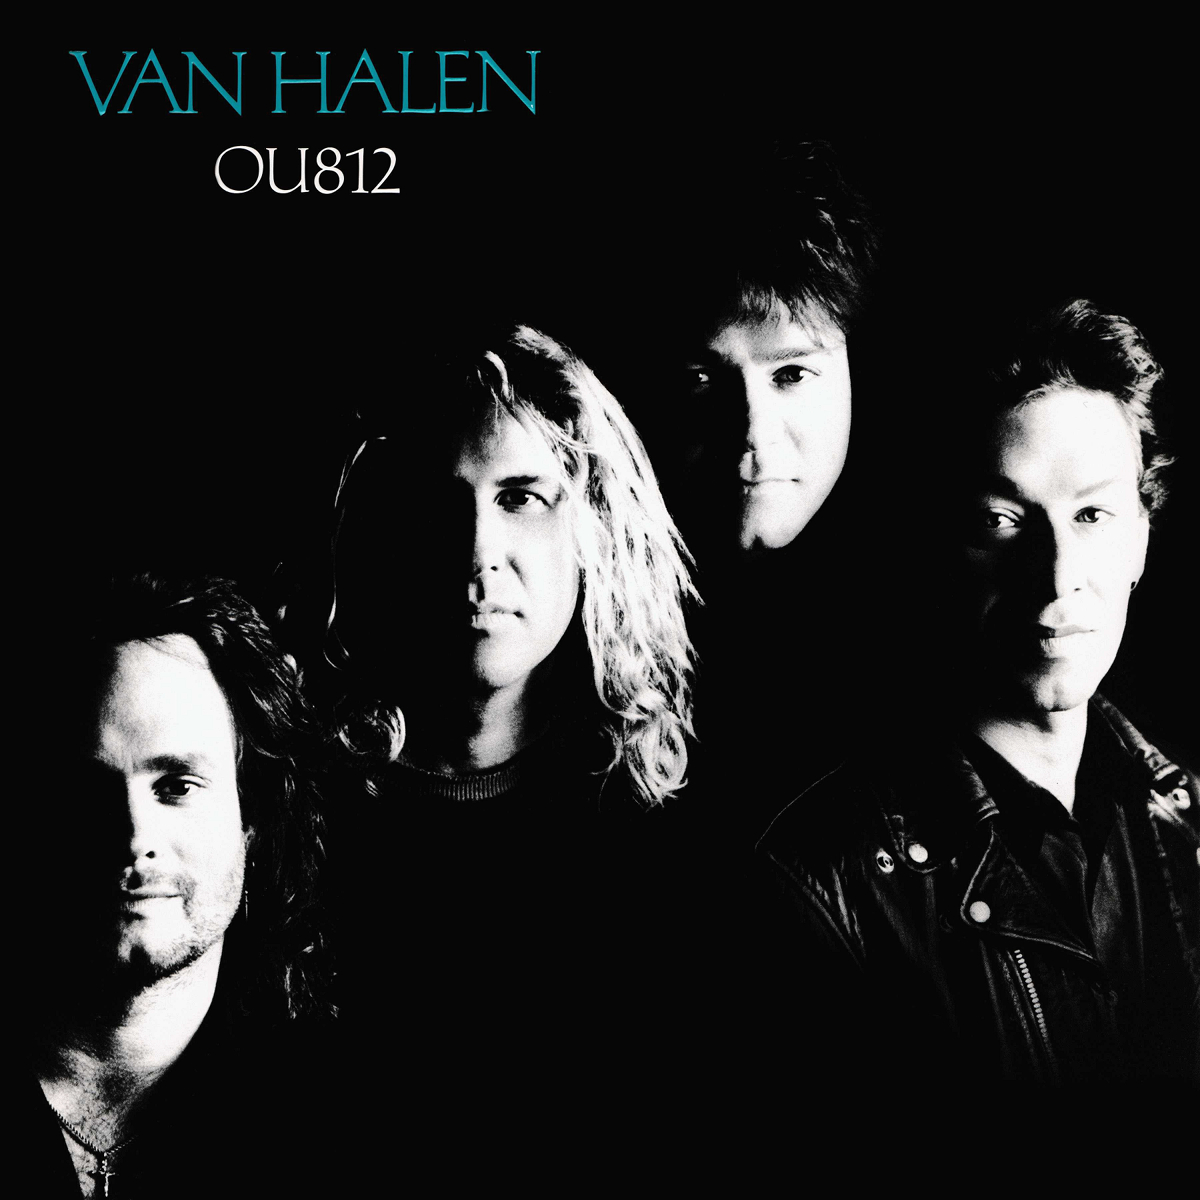 #AlbumOfTheDay to remember the late great @EddieVanHalen on what would've been his 66th birthday. My musical entry point in influence/knowledge always starts at Eddie #VanHalen. OU812 is solid through-and-through, and appeared to be peak happiness for the band. #RIPEddieVanHalen